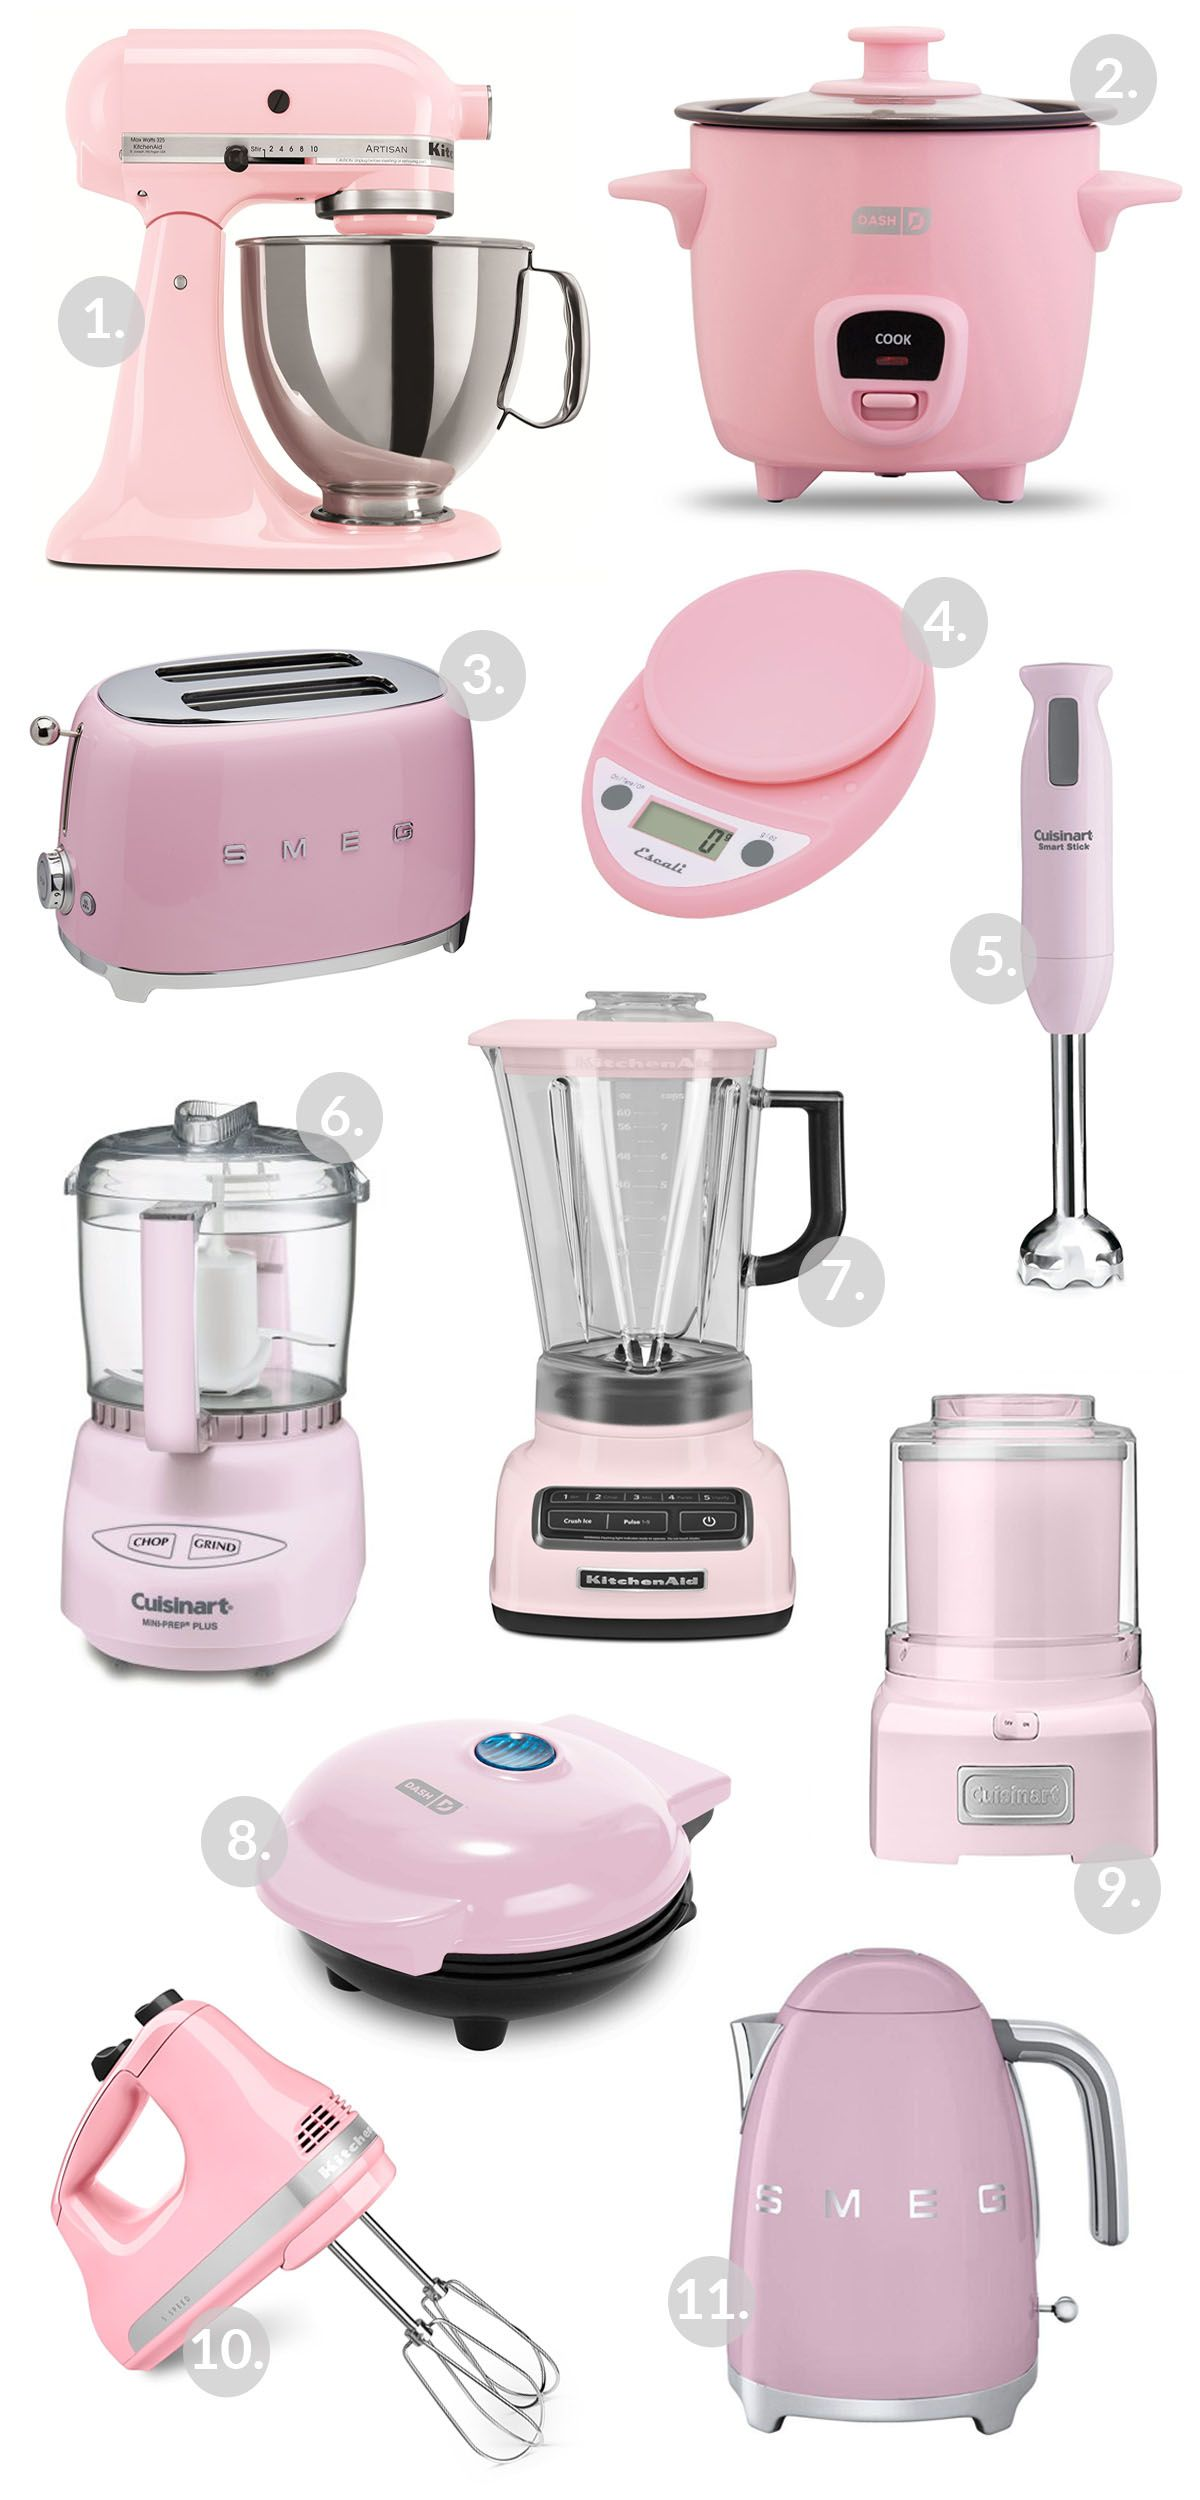 Pink Kitchen Appliances! Great for accessorizing a kitchen! #pink #kitchen #pinkkitchen